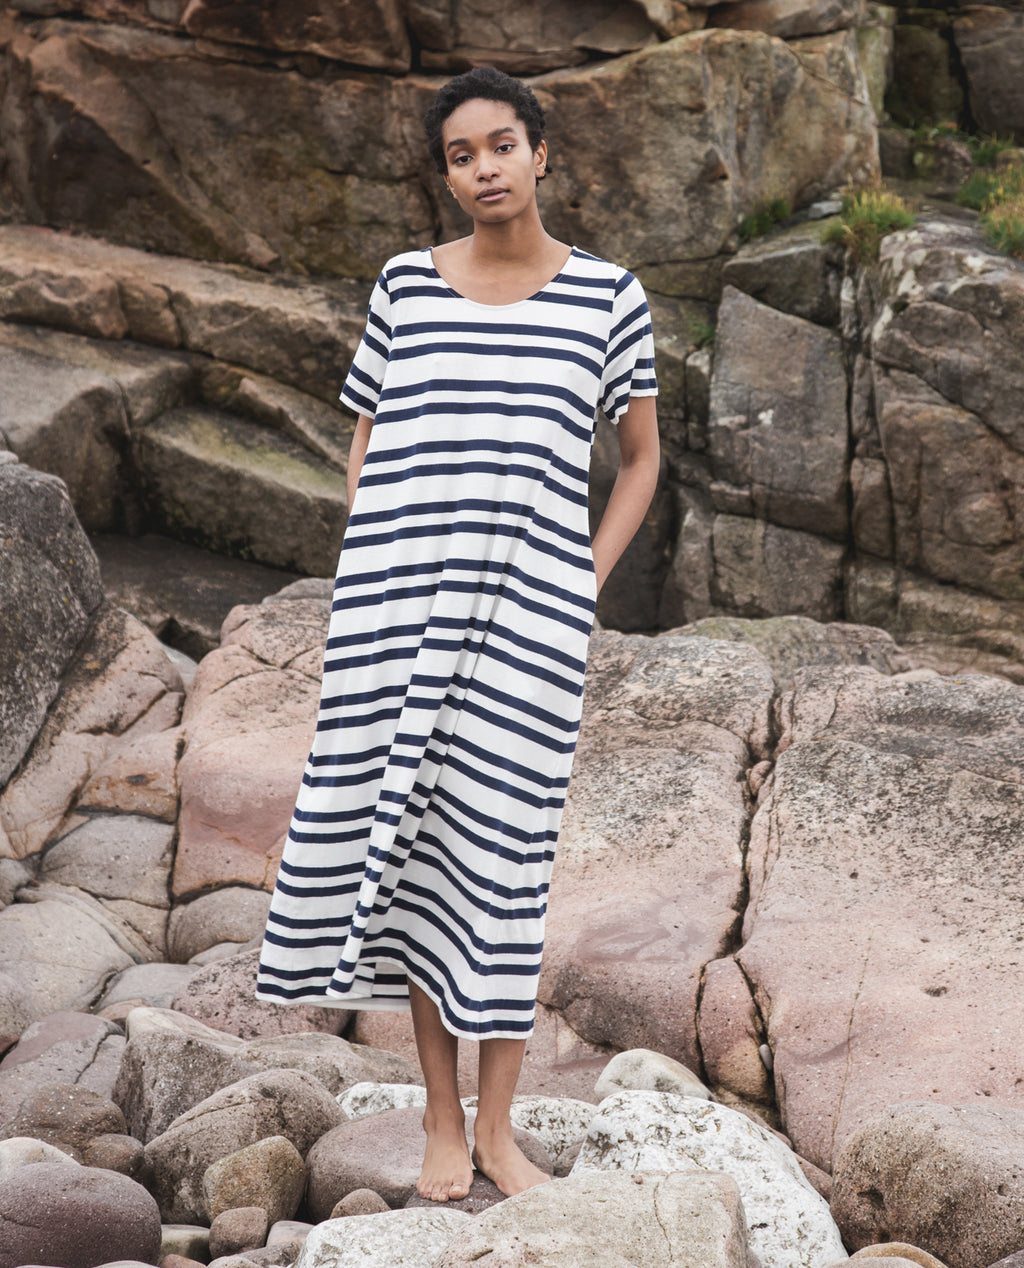 Viola-Sue Organic Cotton Dress In Off White & Navy.